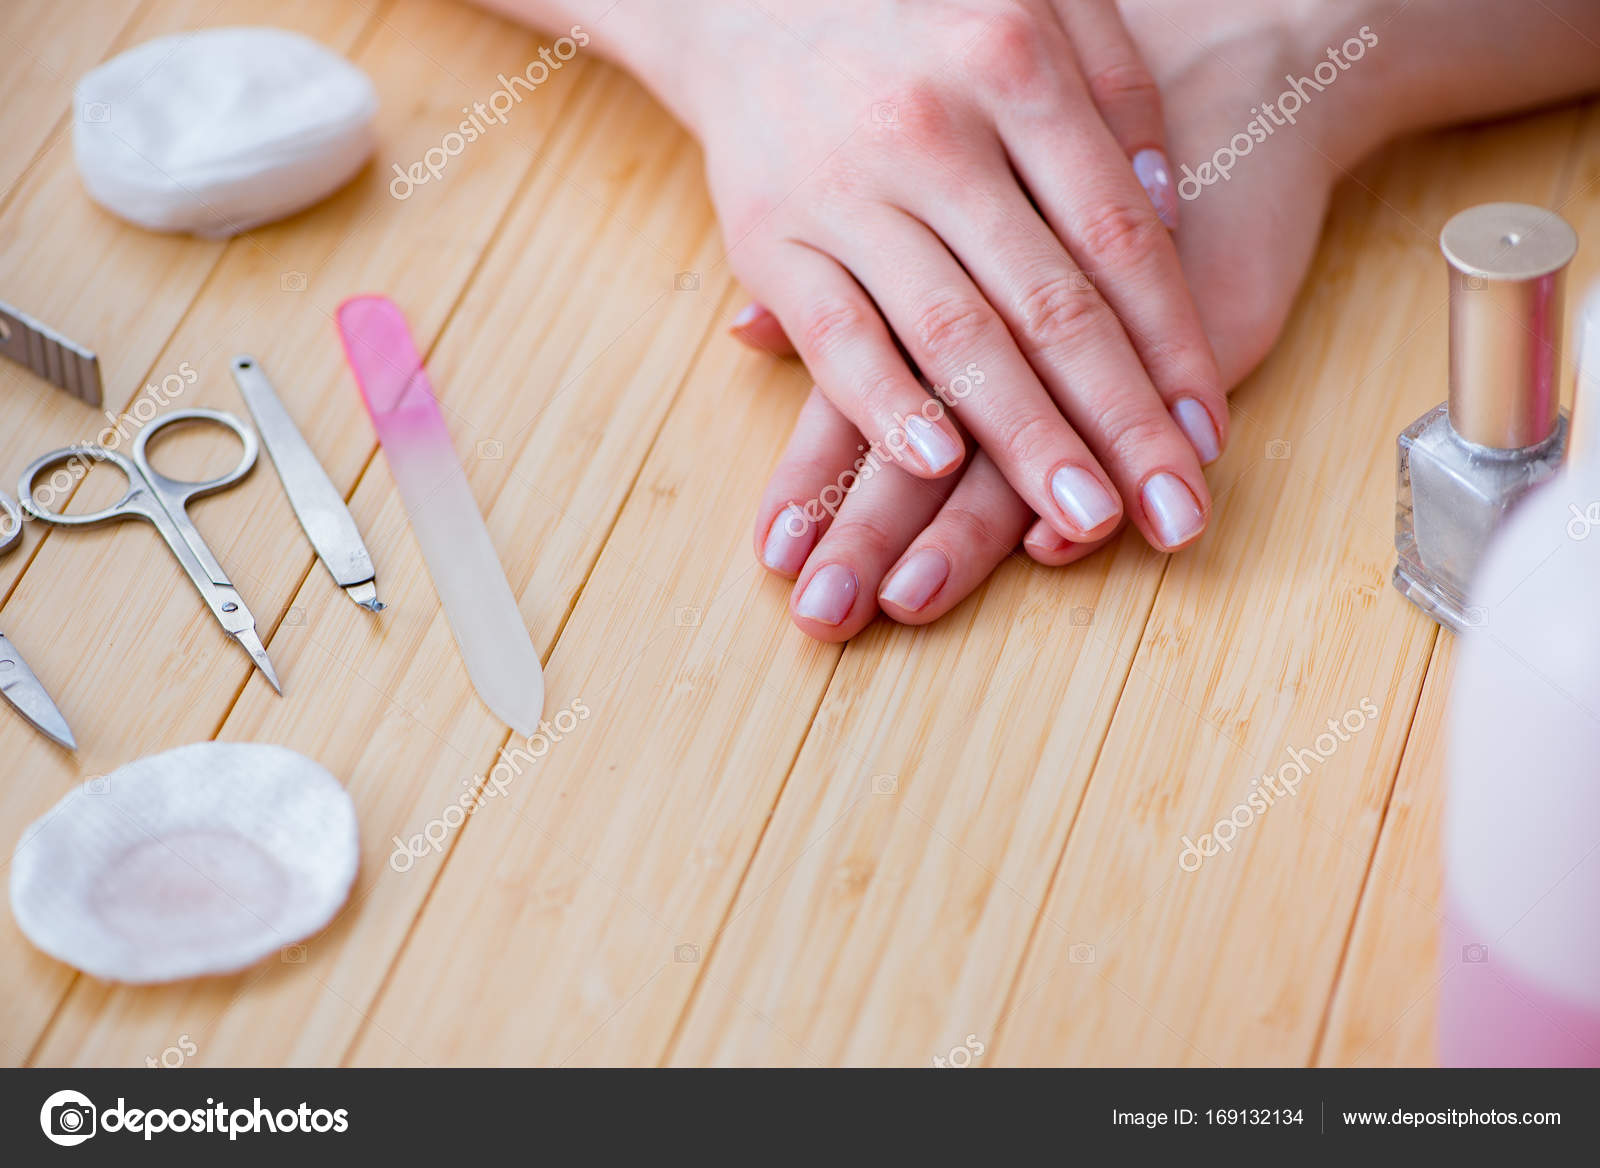 Beauty products nail care tools pedicure closeup — Stock Photo ...